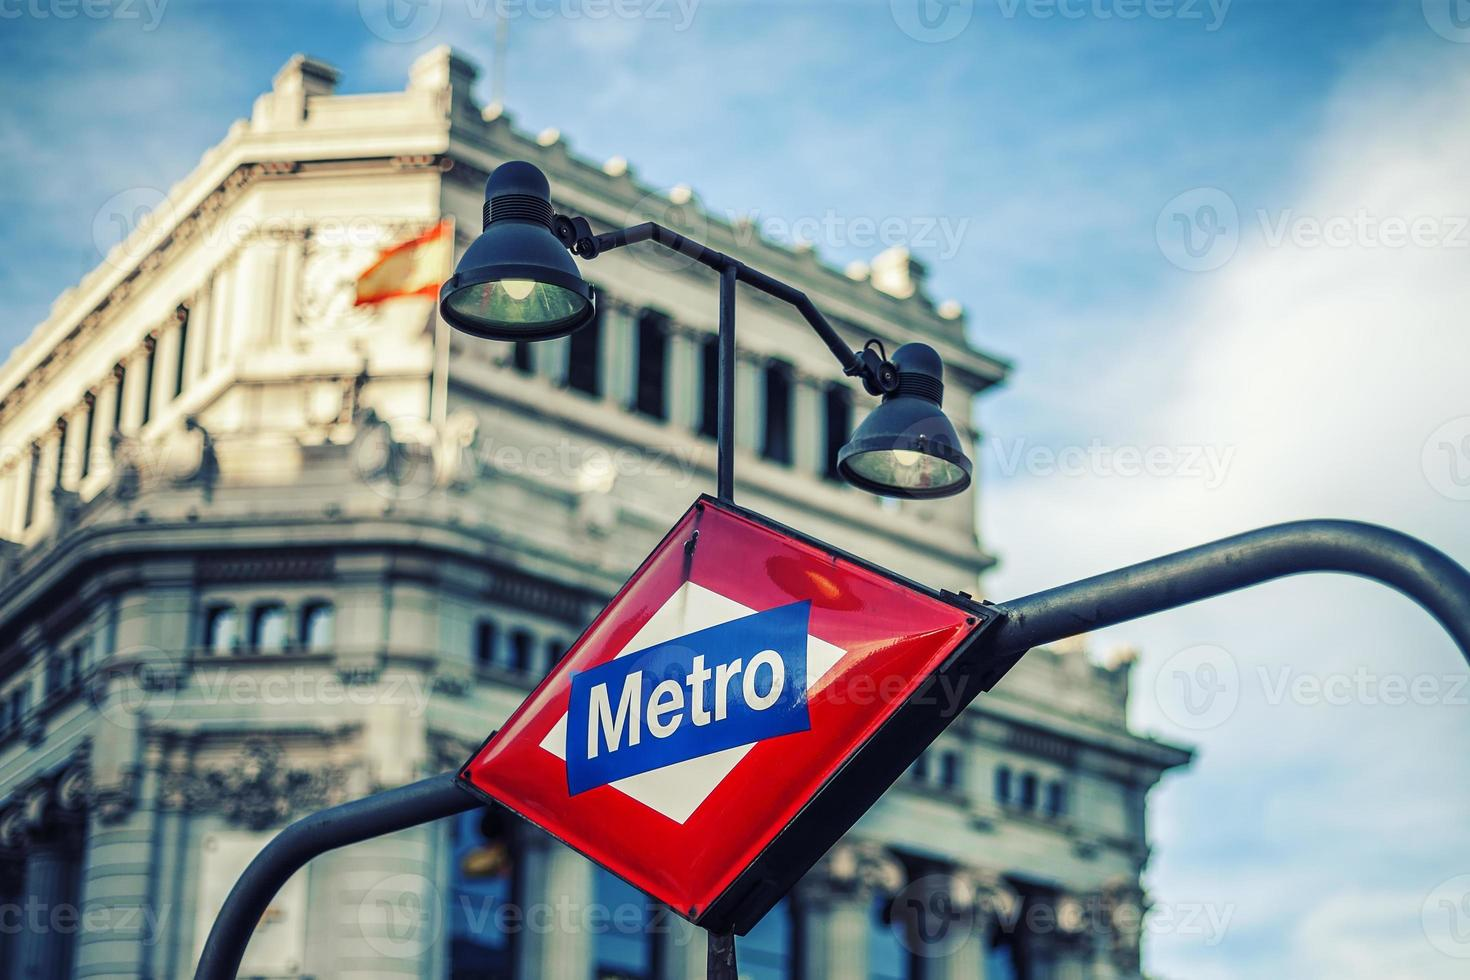 Metro Station Sign in Madrid photo